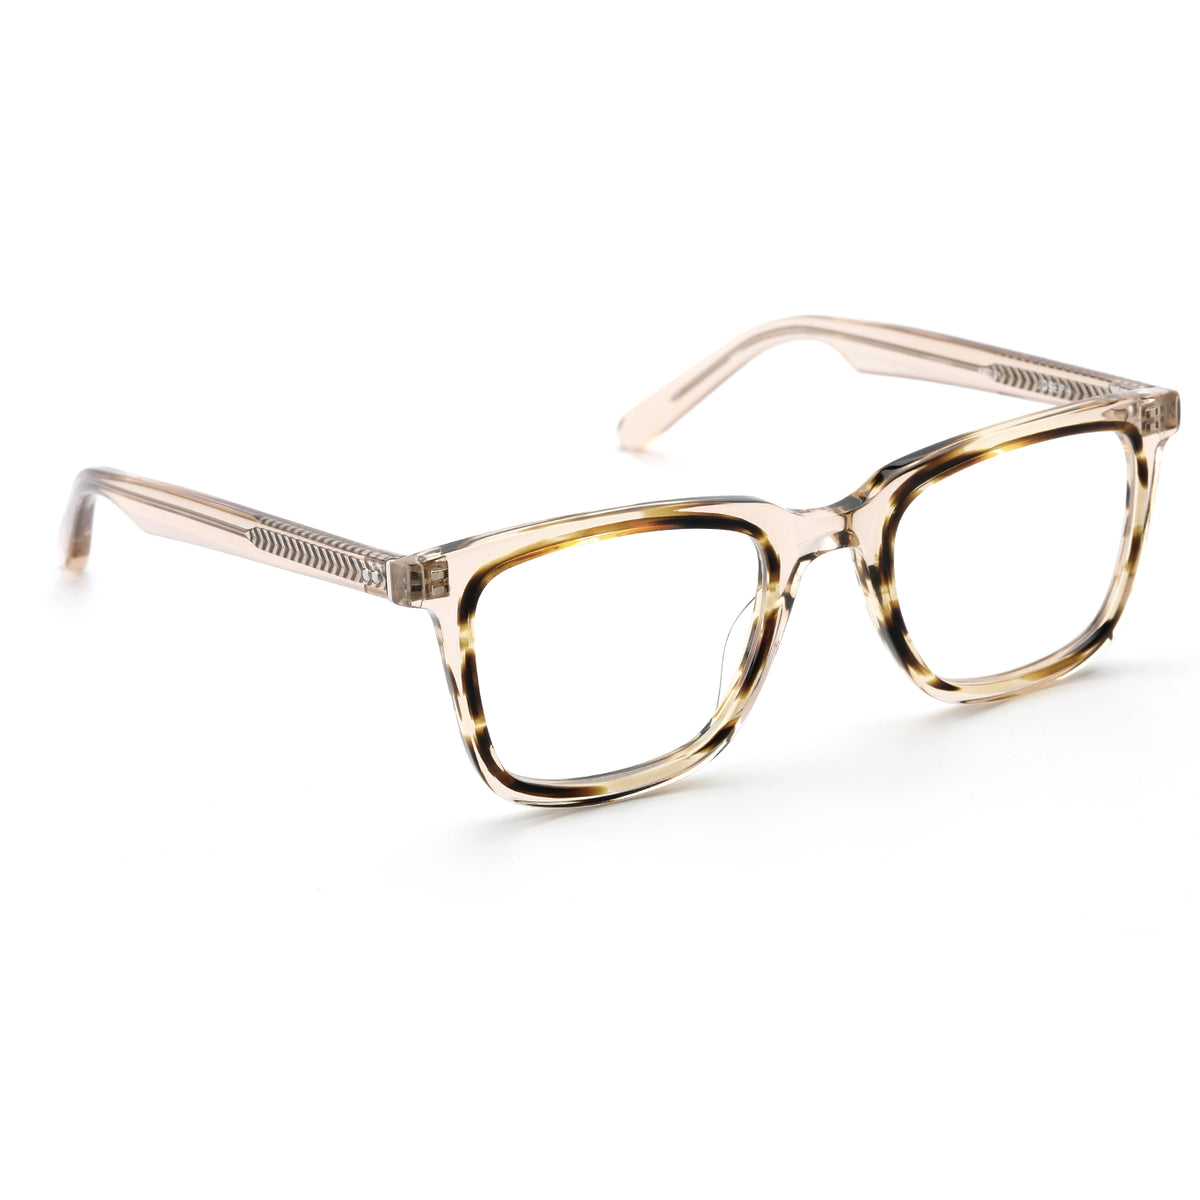 JOSEPH | Buff to Oak - handcrafted acetete eyewear